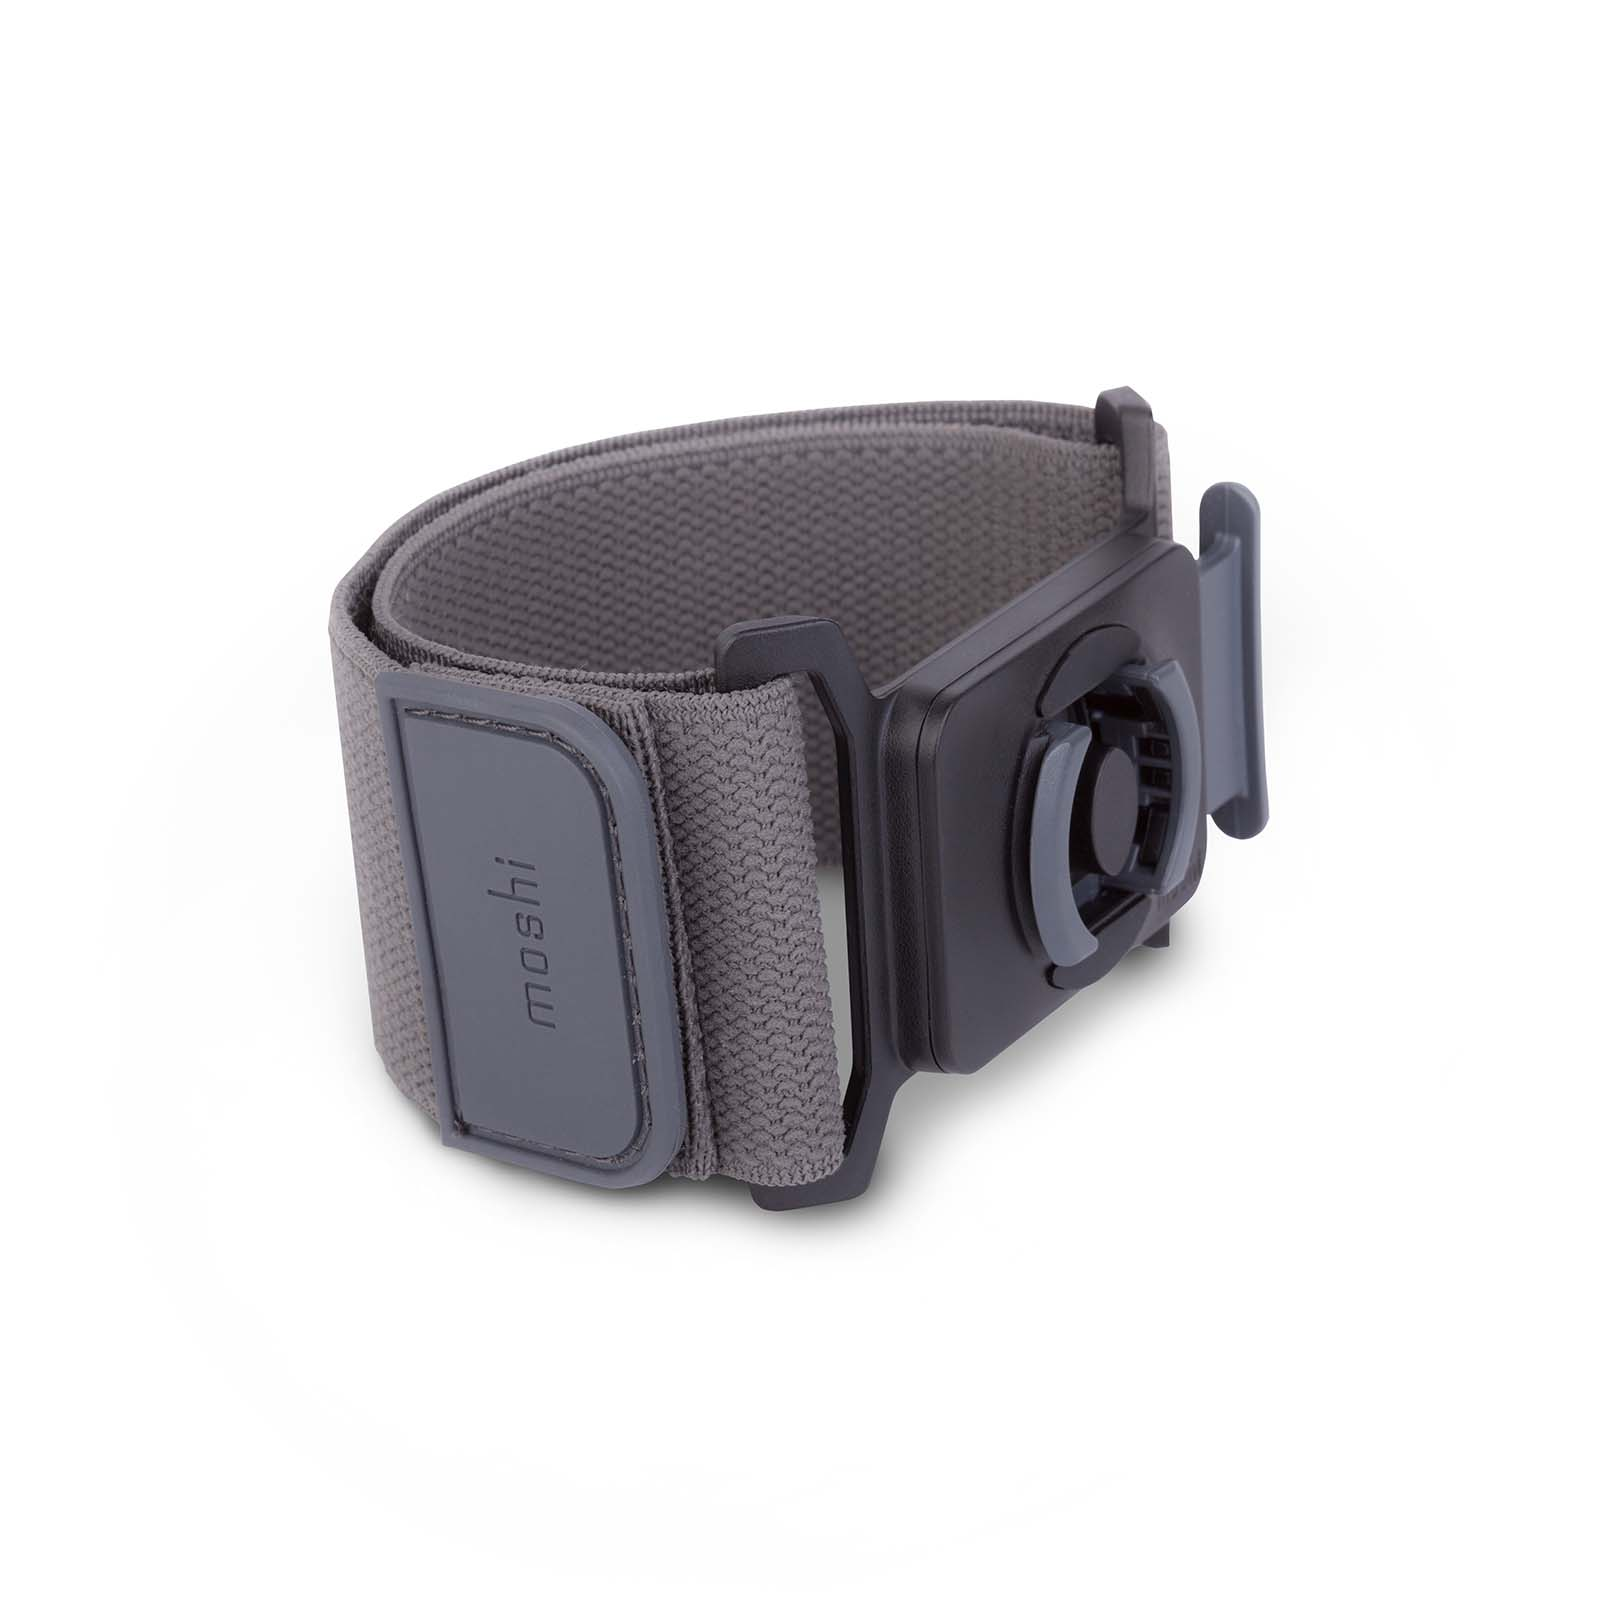 Running Kit Case and Armband-image